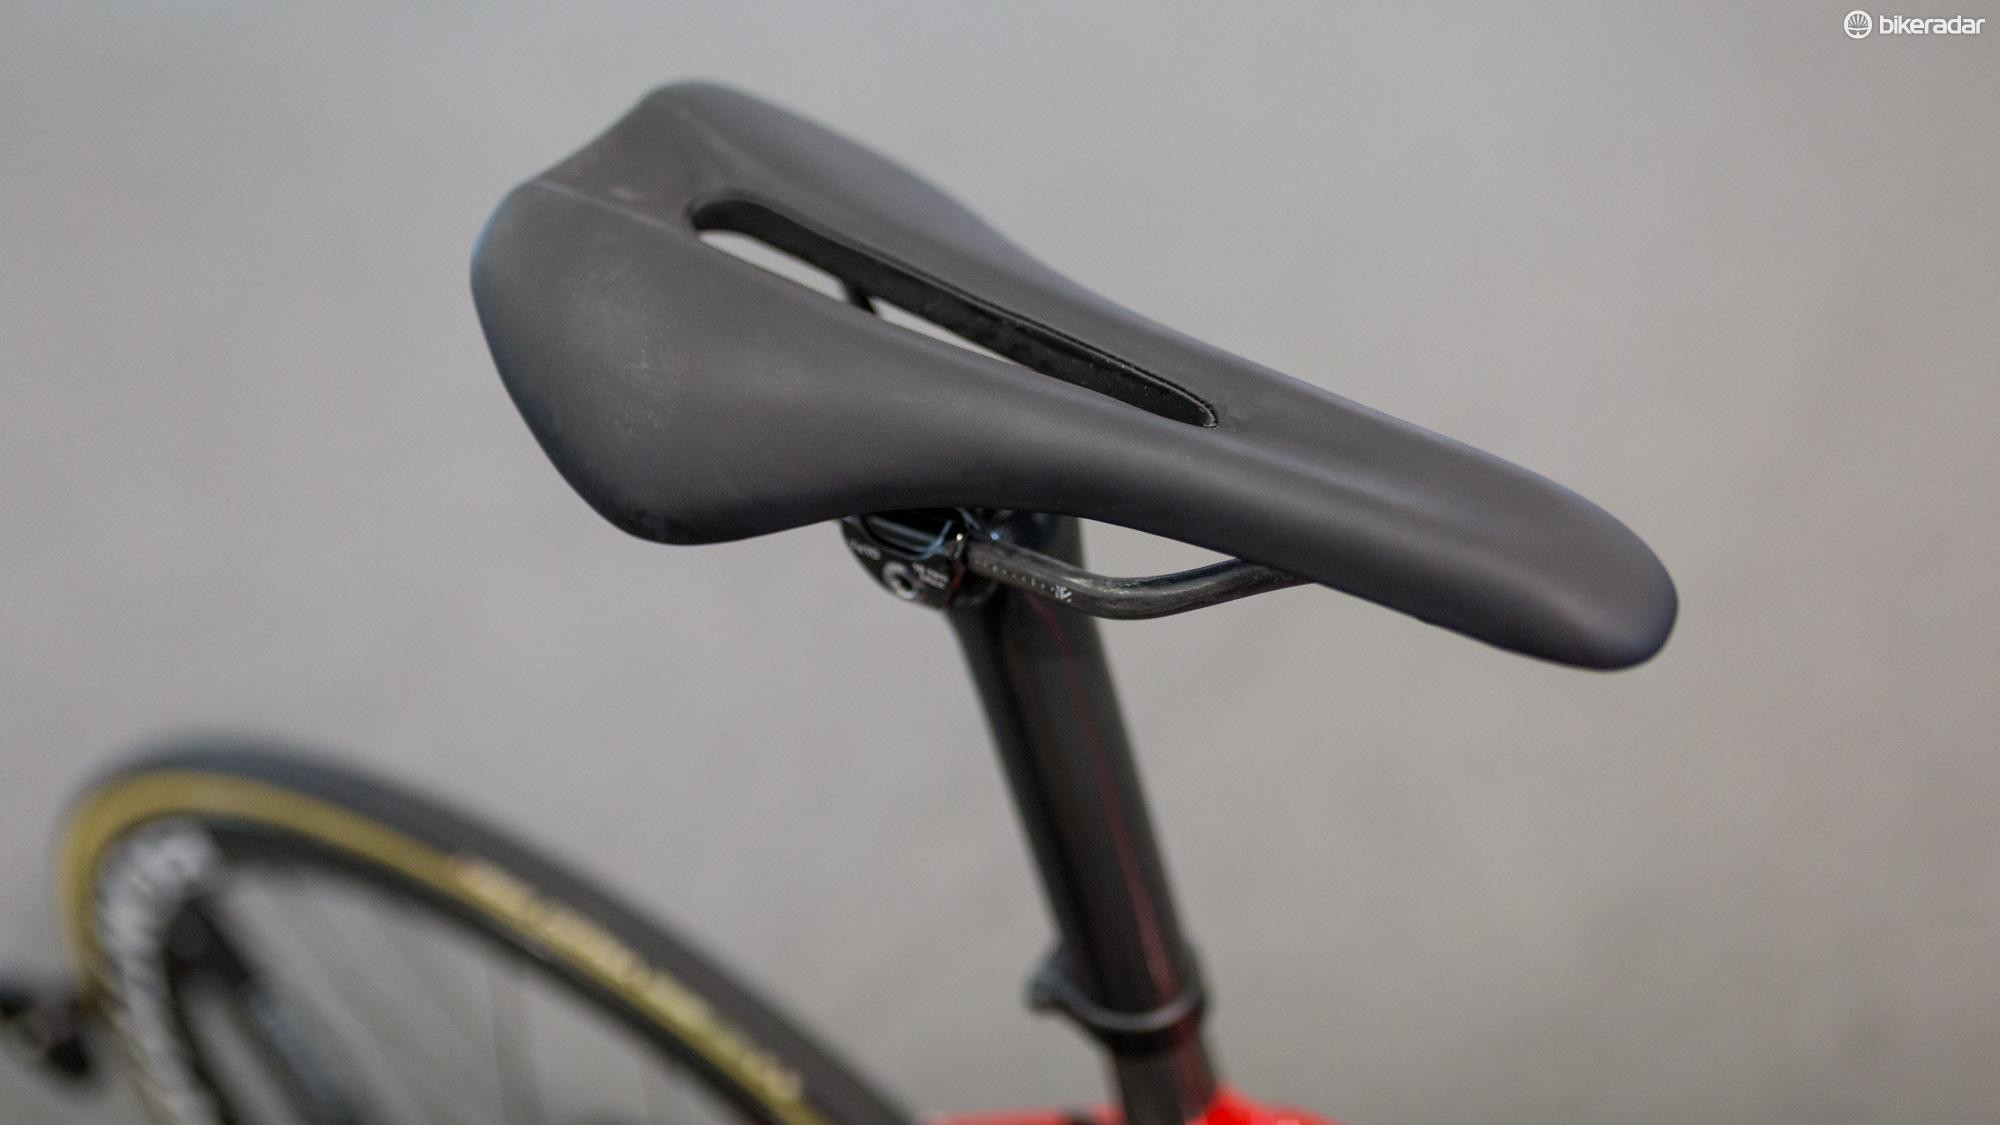 Eg is running a previously unseen prototype Bontrager saddle